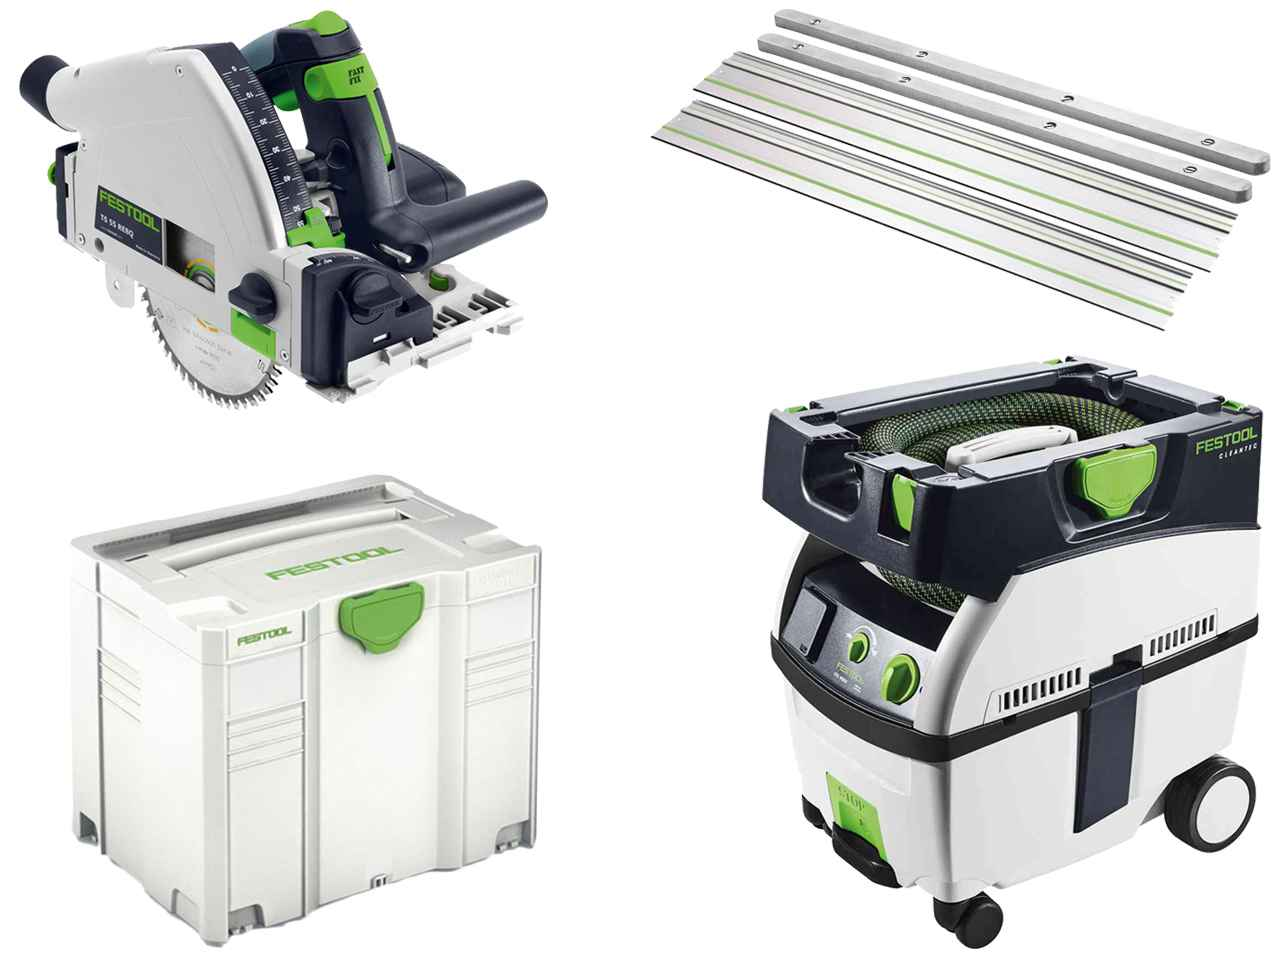 Festool_TS55KIT1.jpg